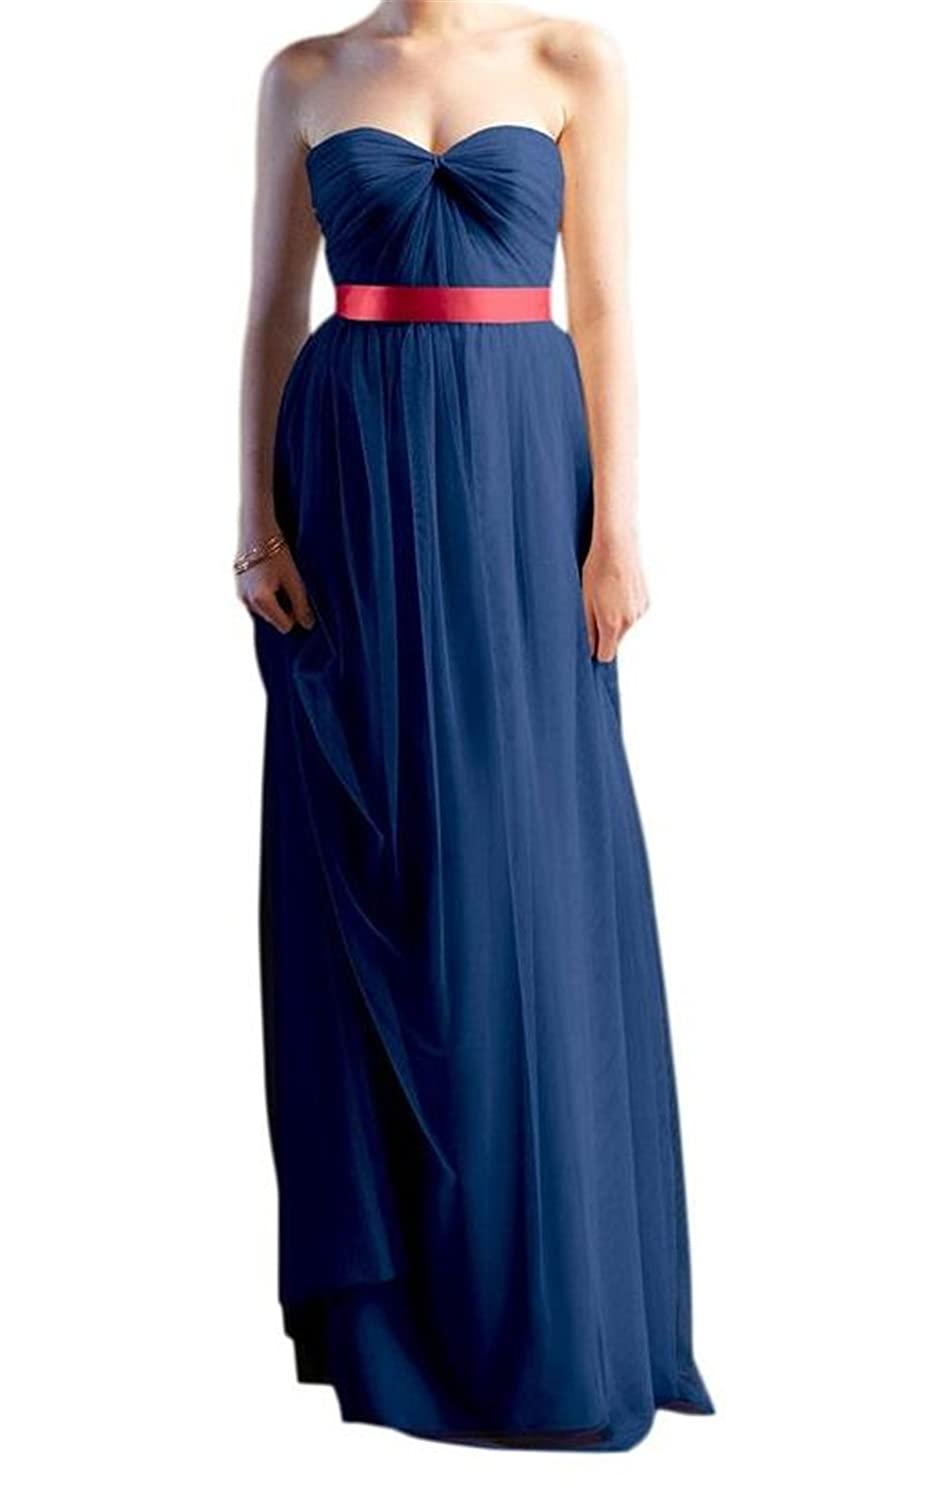 AngelDragon Strapless Ruched Empire Long Tulle Bridesmaid Evening Dress